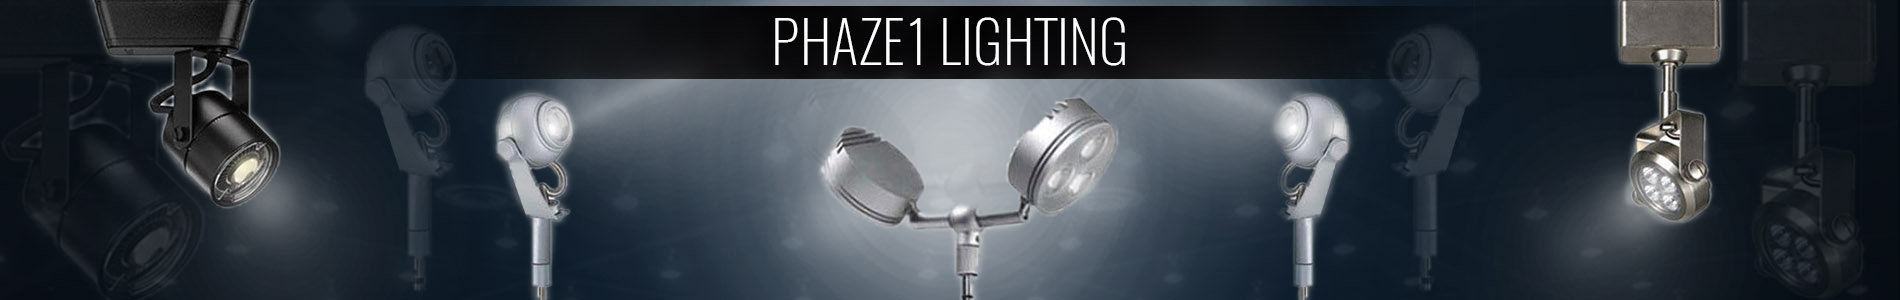 phaze1-lighting-led-trade-show-displays